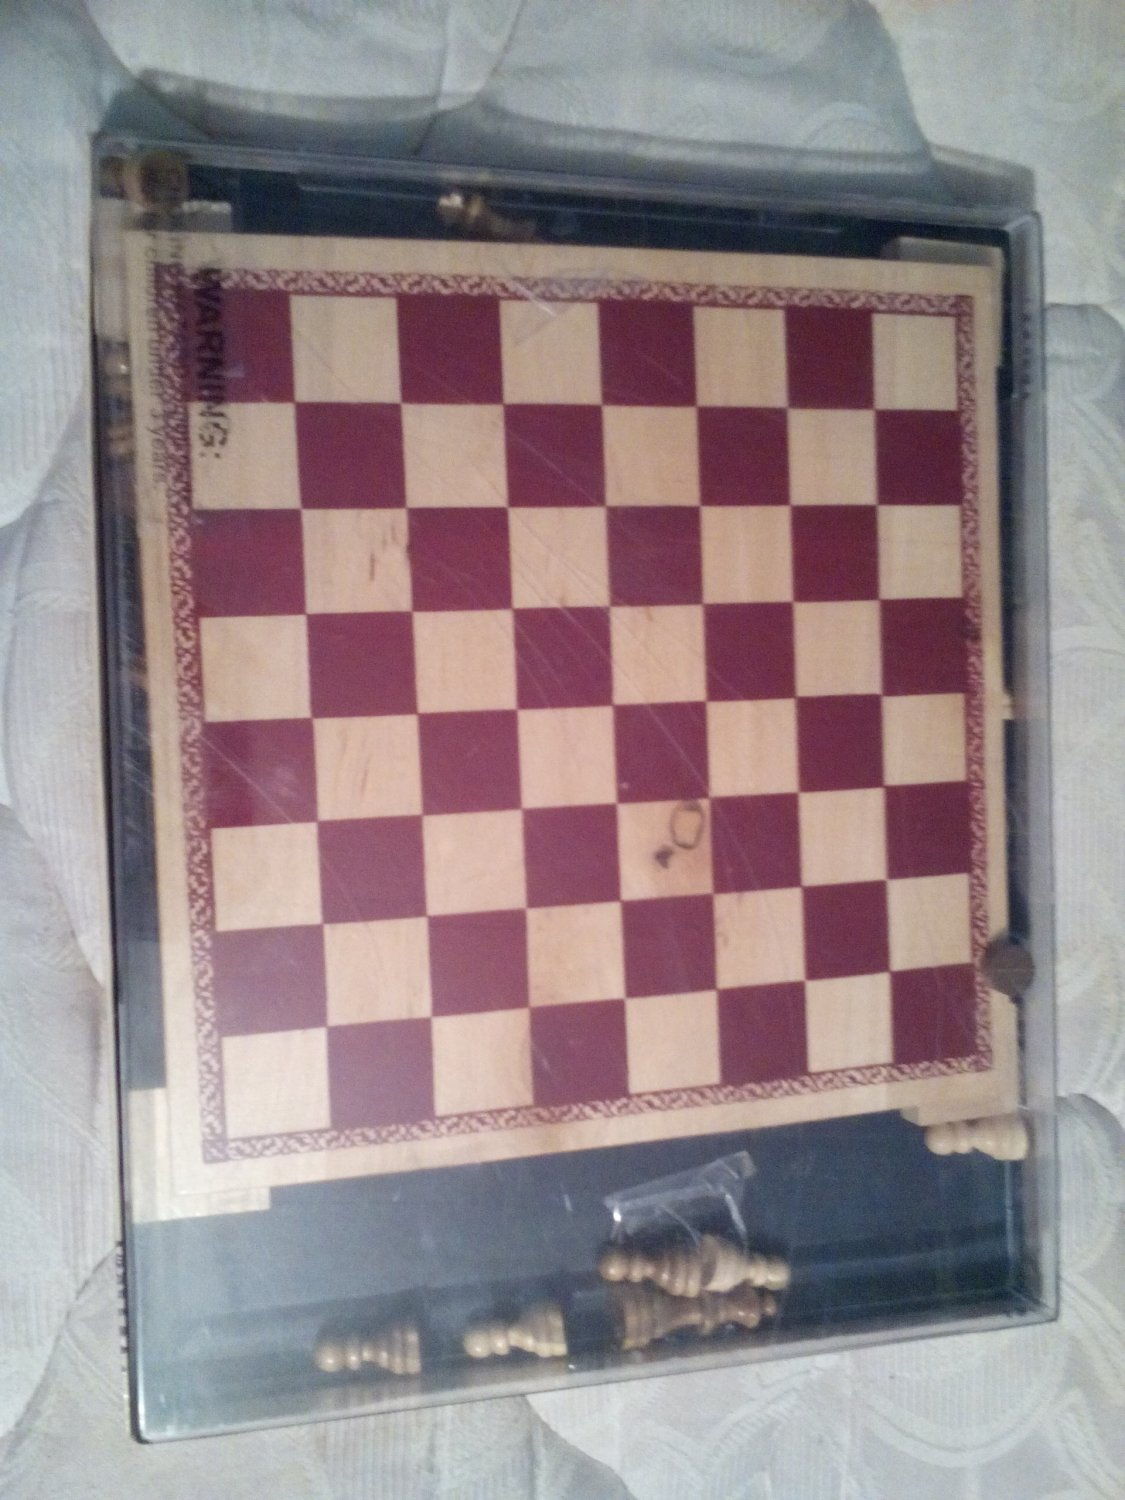 chess and checkers 2 in 1